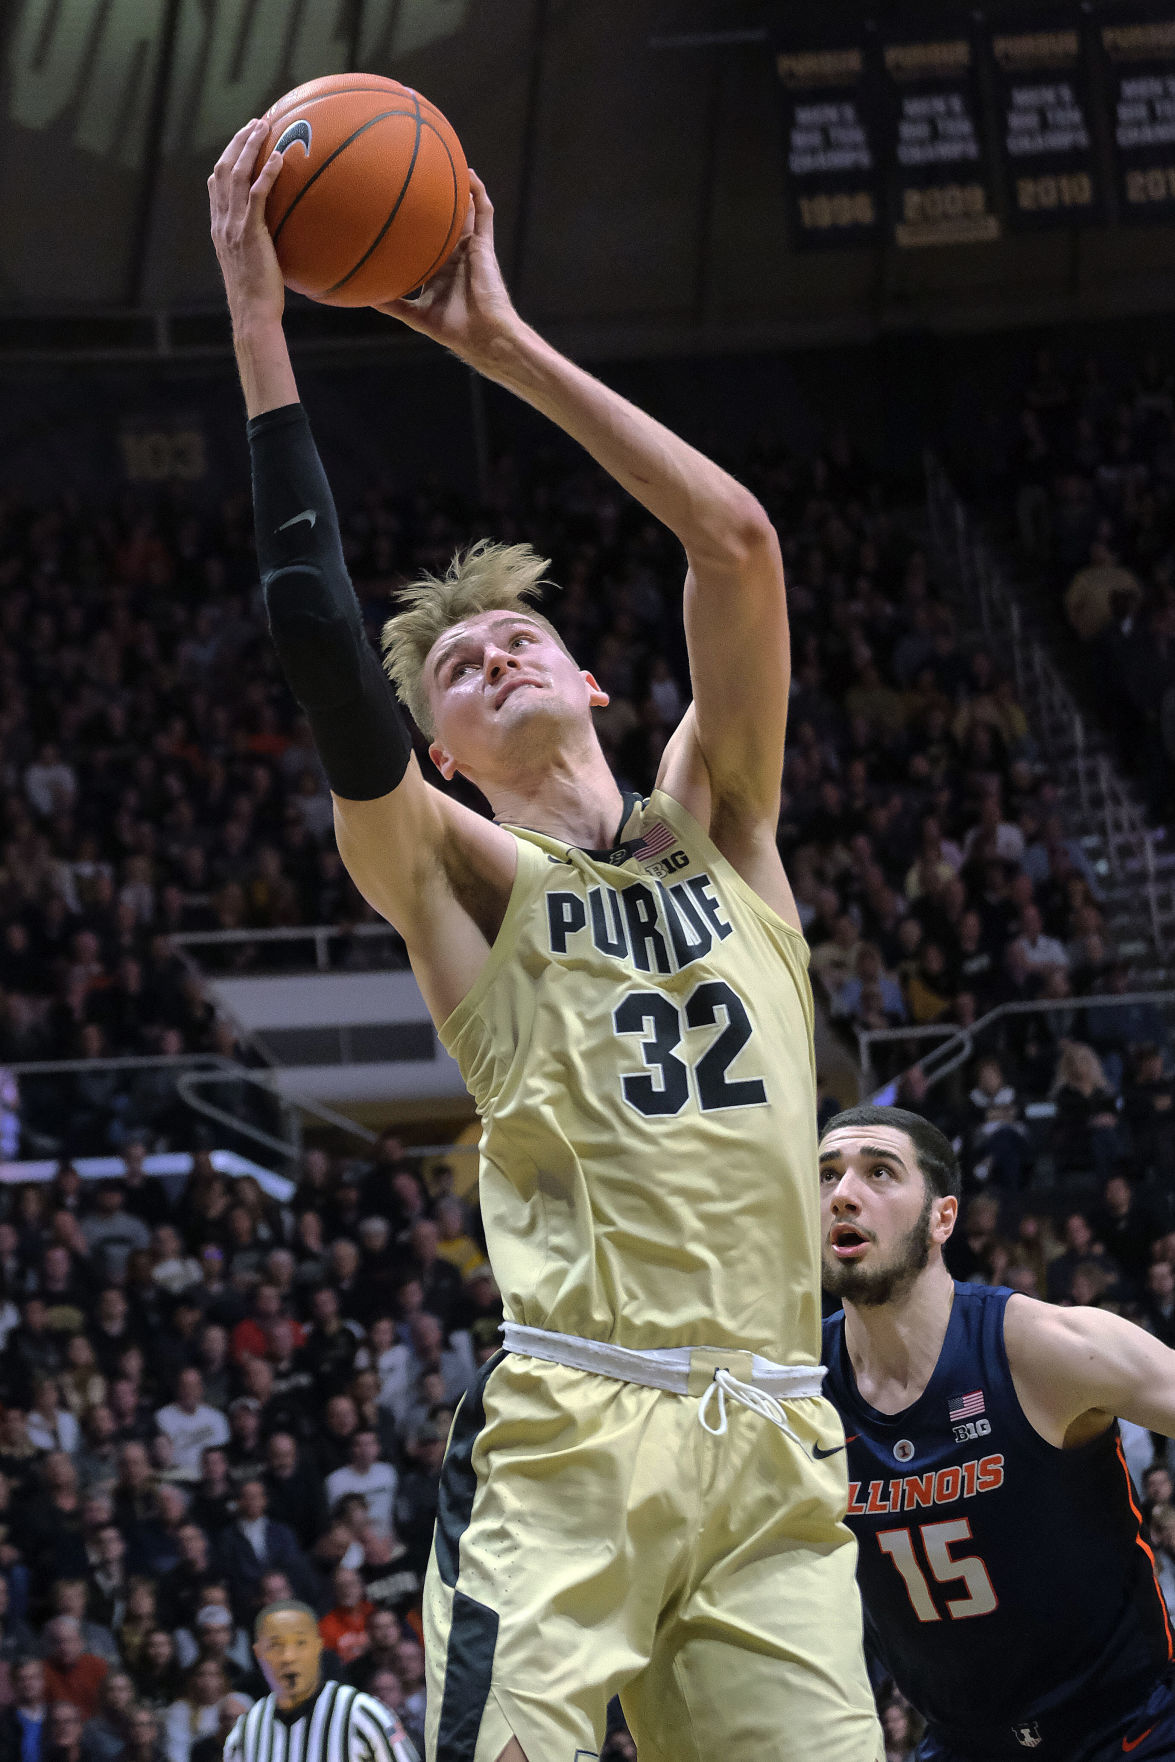 Illinois Purdue Basketball